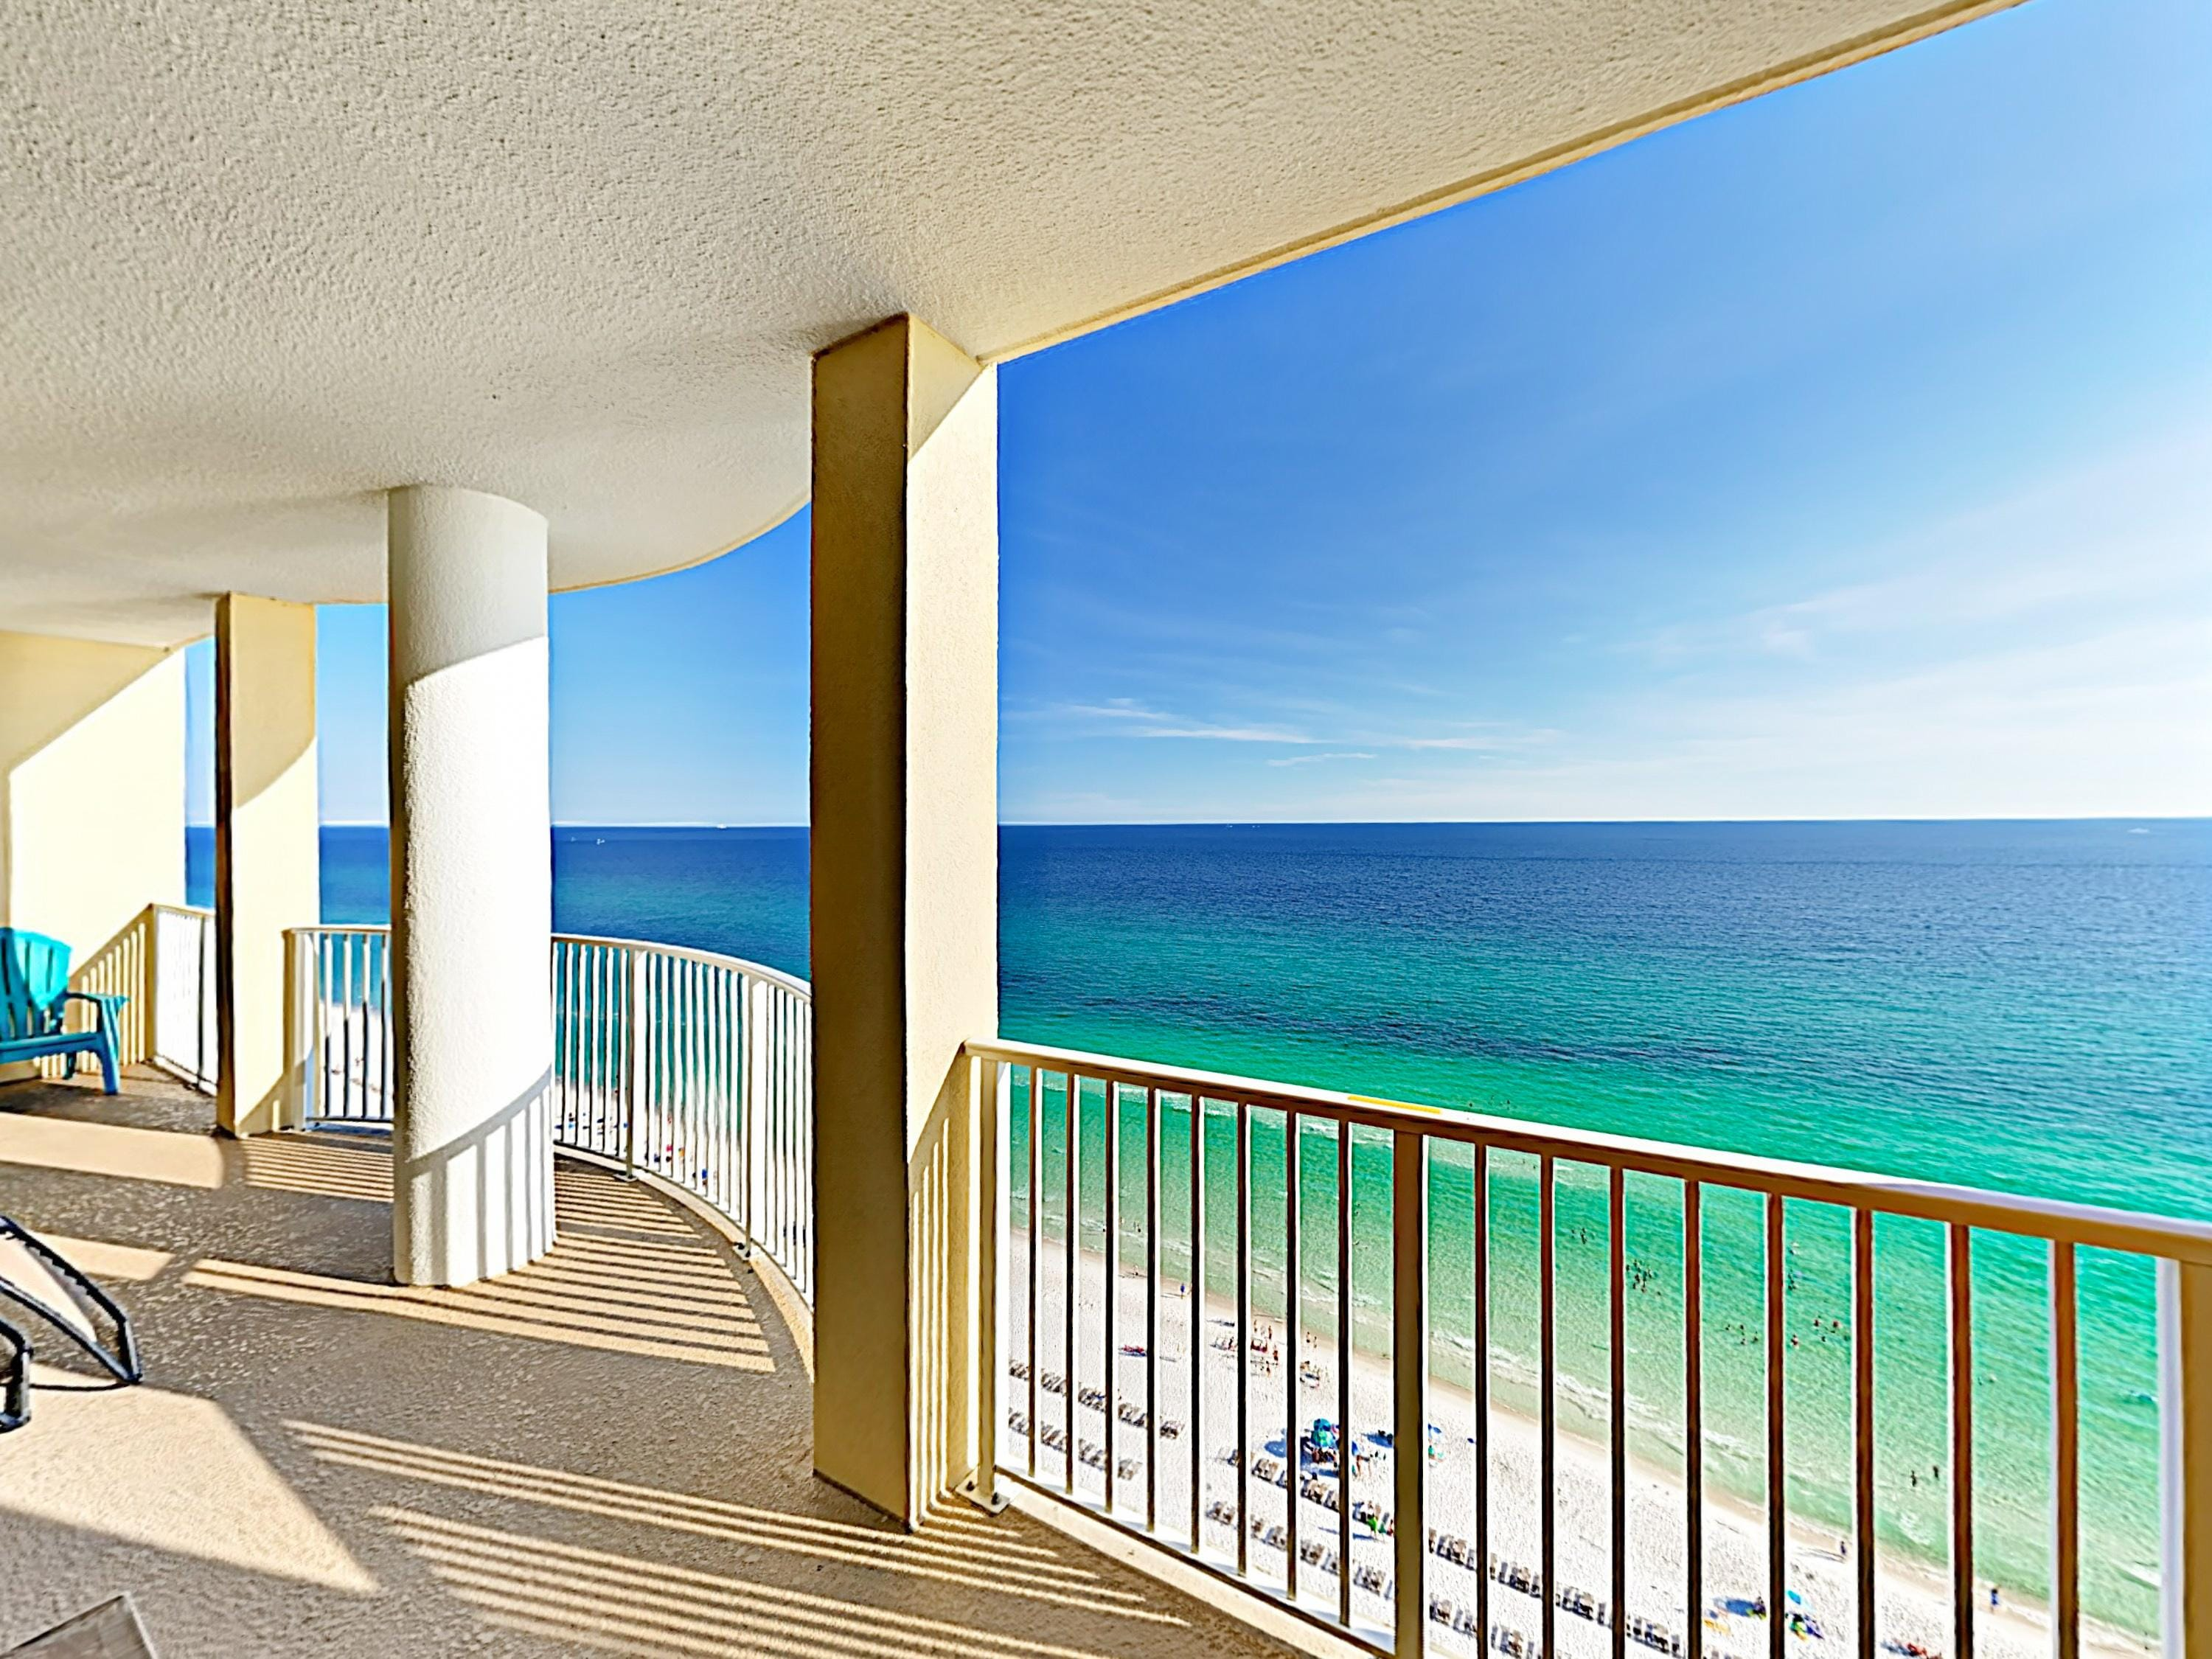 Classic Beachfront Condo with Private Gulf-View Balcony